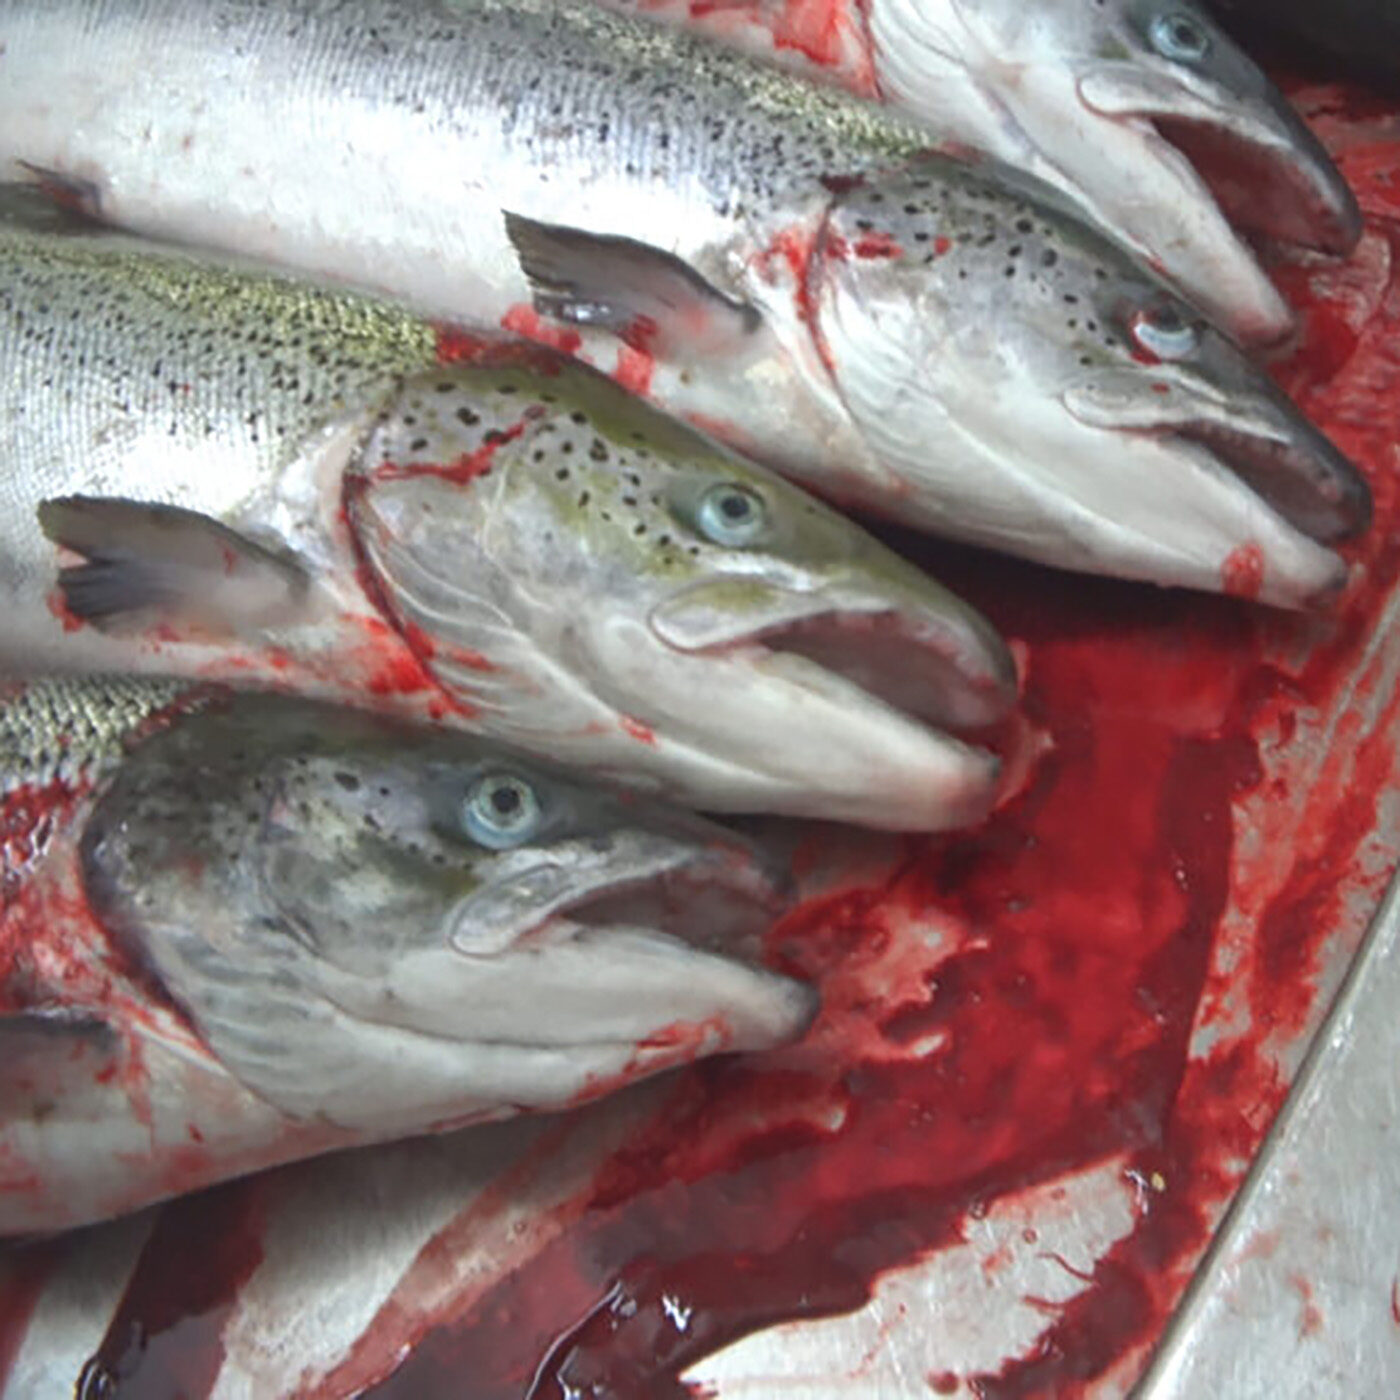 Scottish Salmon Killed While Conscious